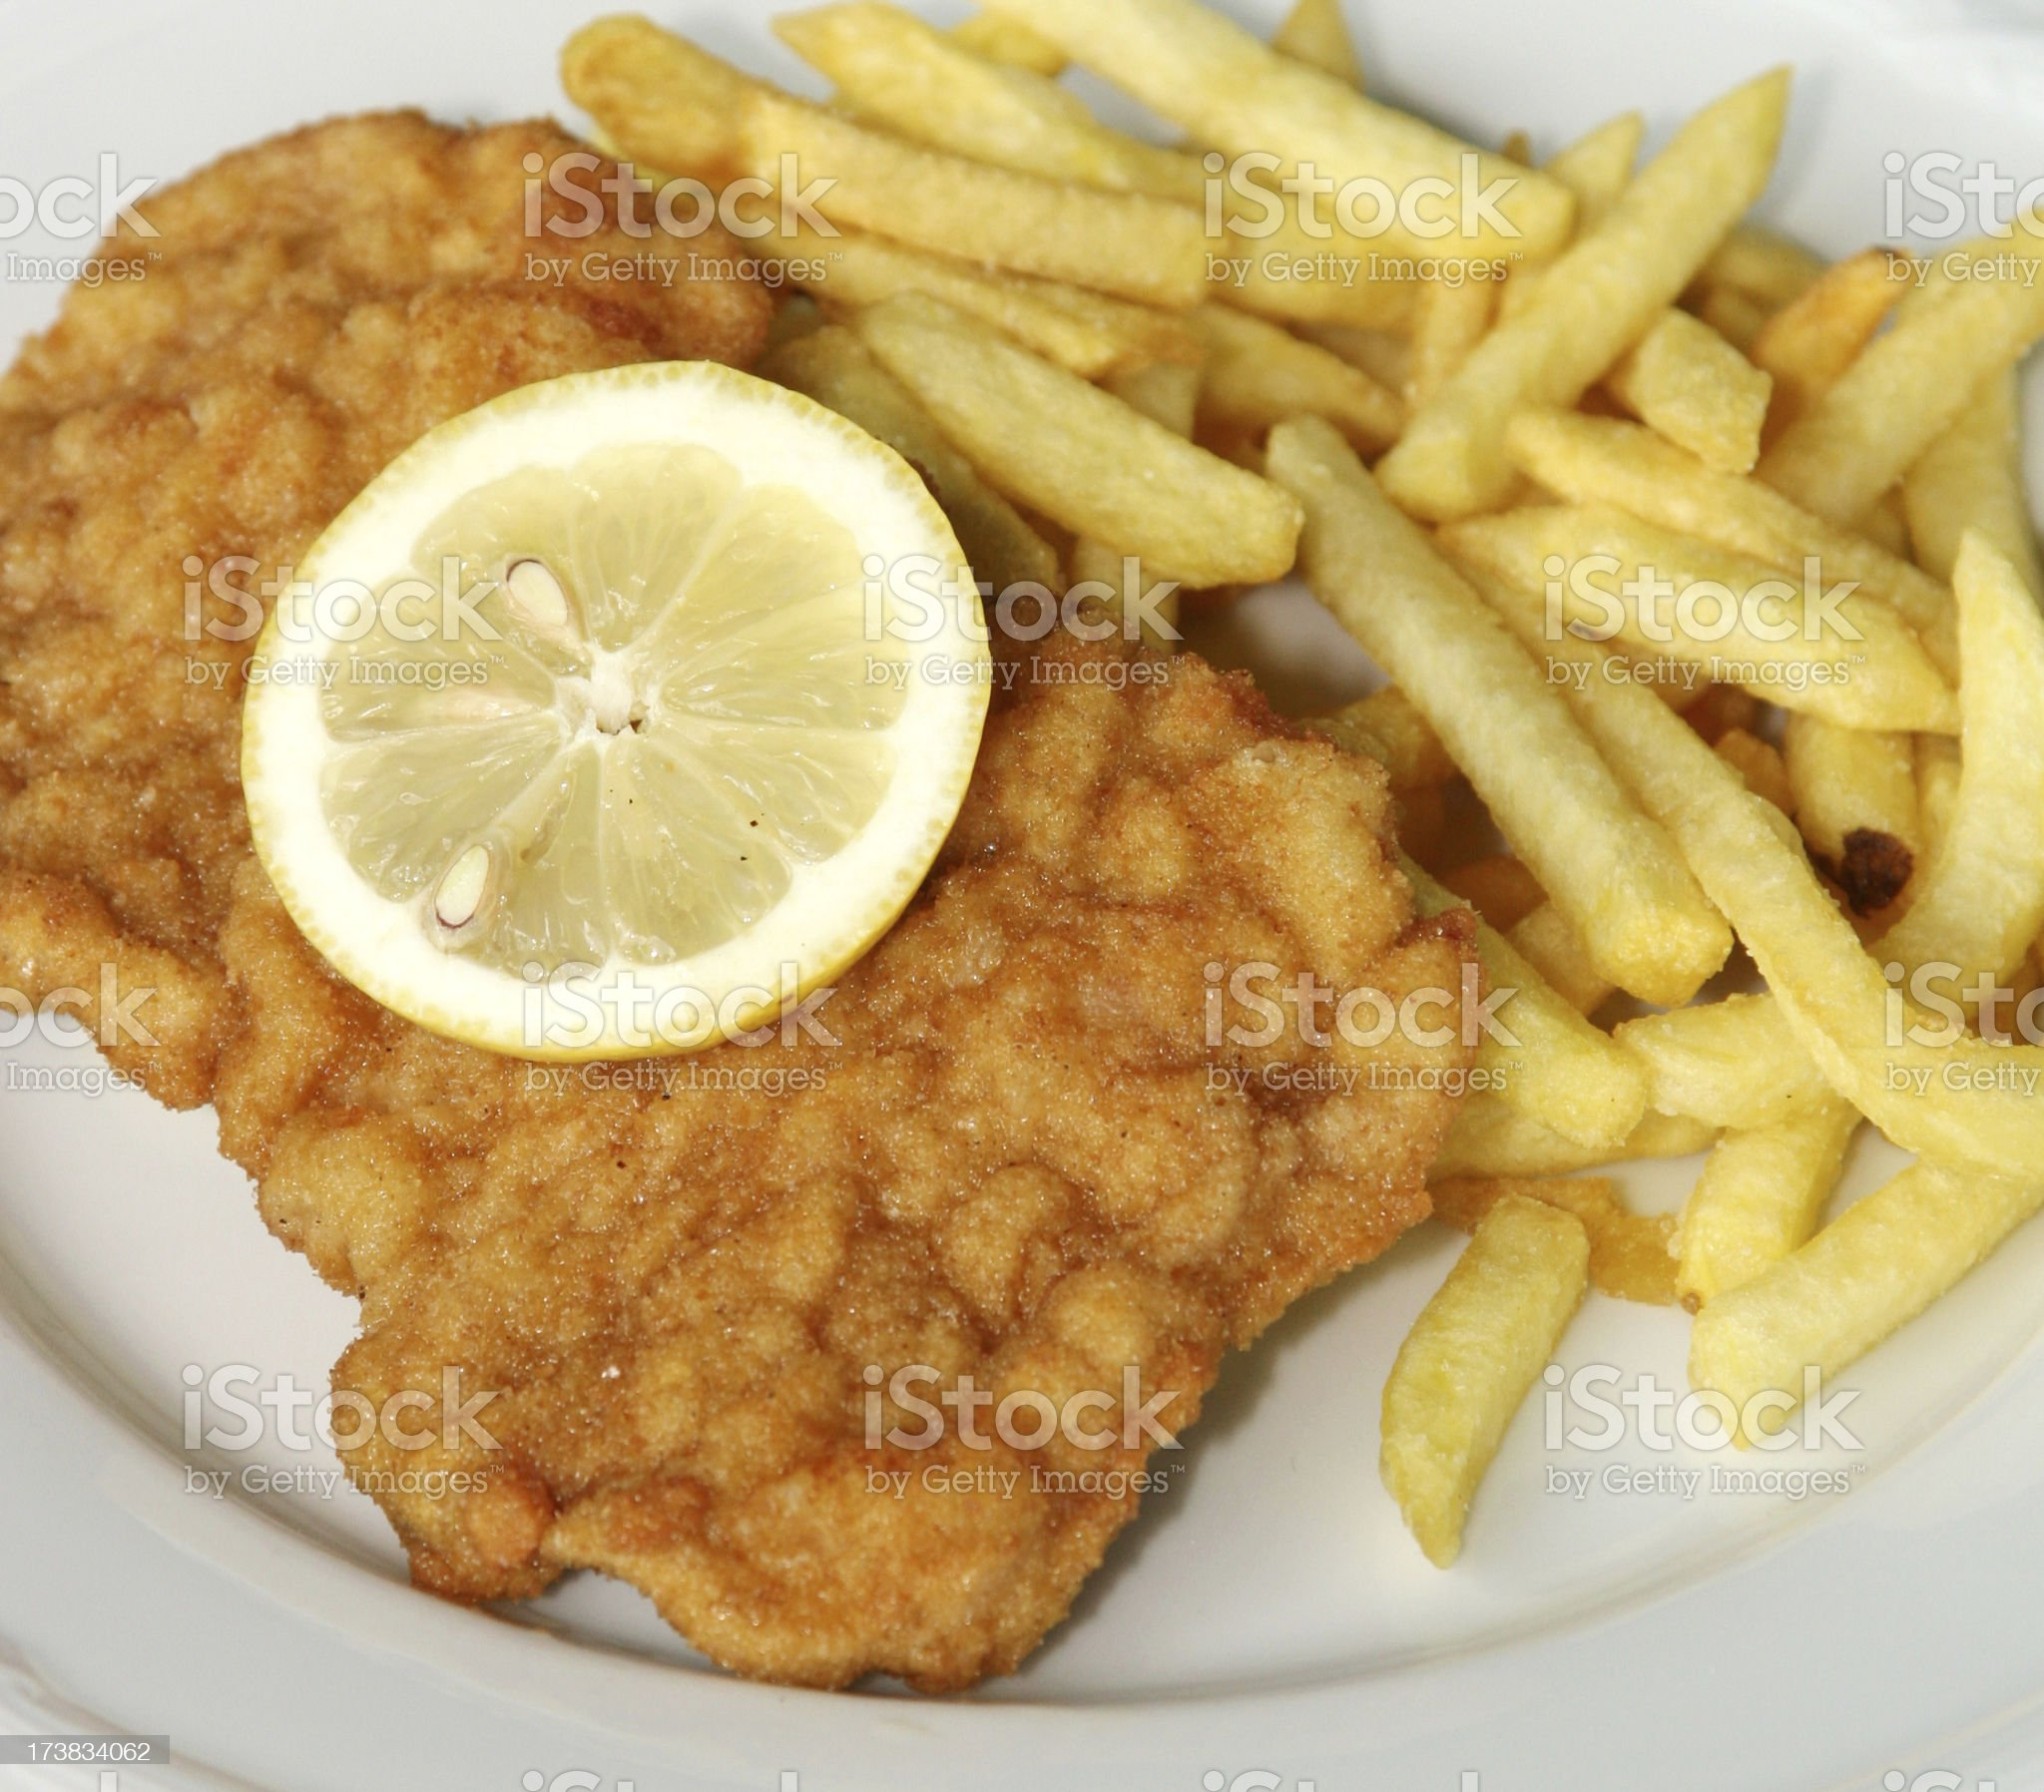 Wiener Schnitzel with French fries royalty-free stock photo